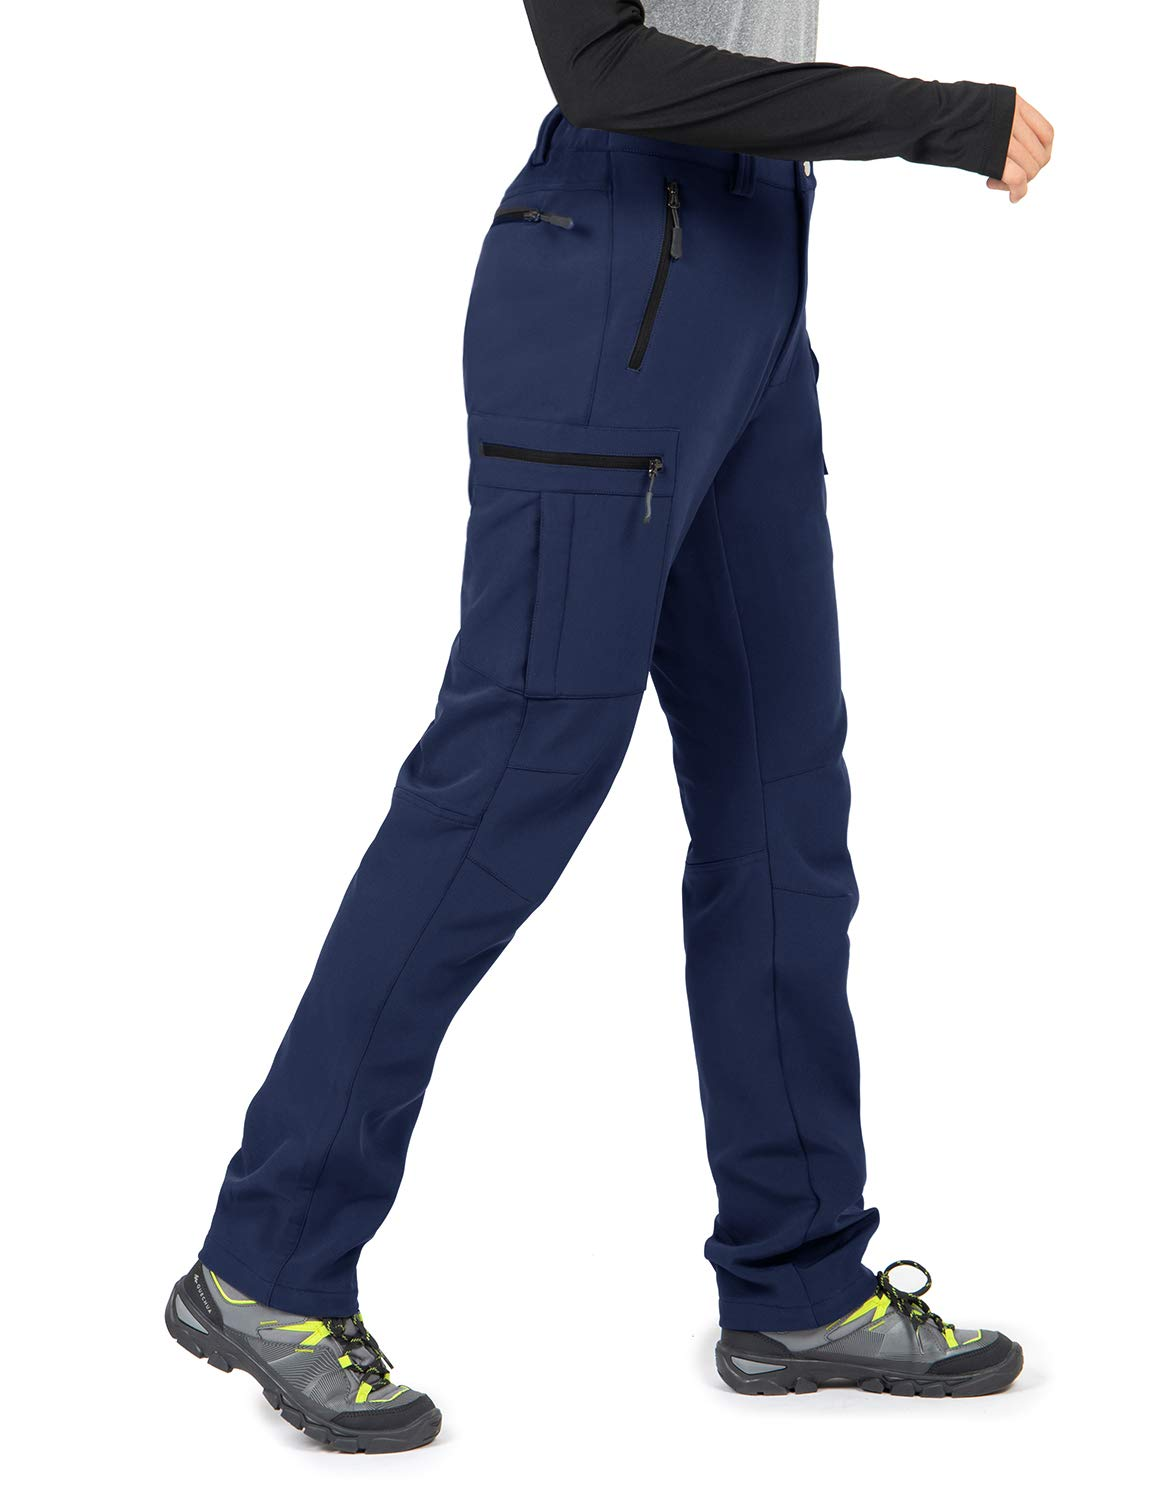 Wespornow Women's-Fleece-Lined-Hiking-Pants Snow-Ski-Pants Water-Resistance-Outdoor-Softshell-Insulated-Pants for Winter